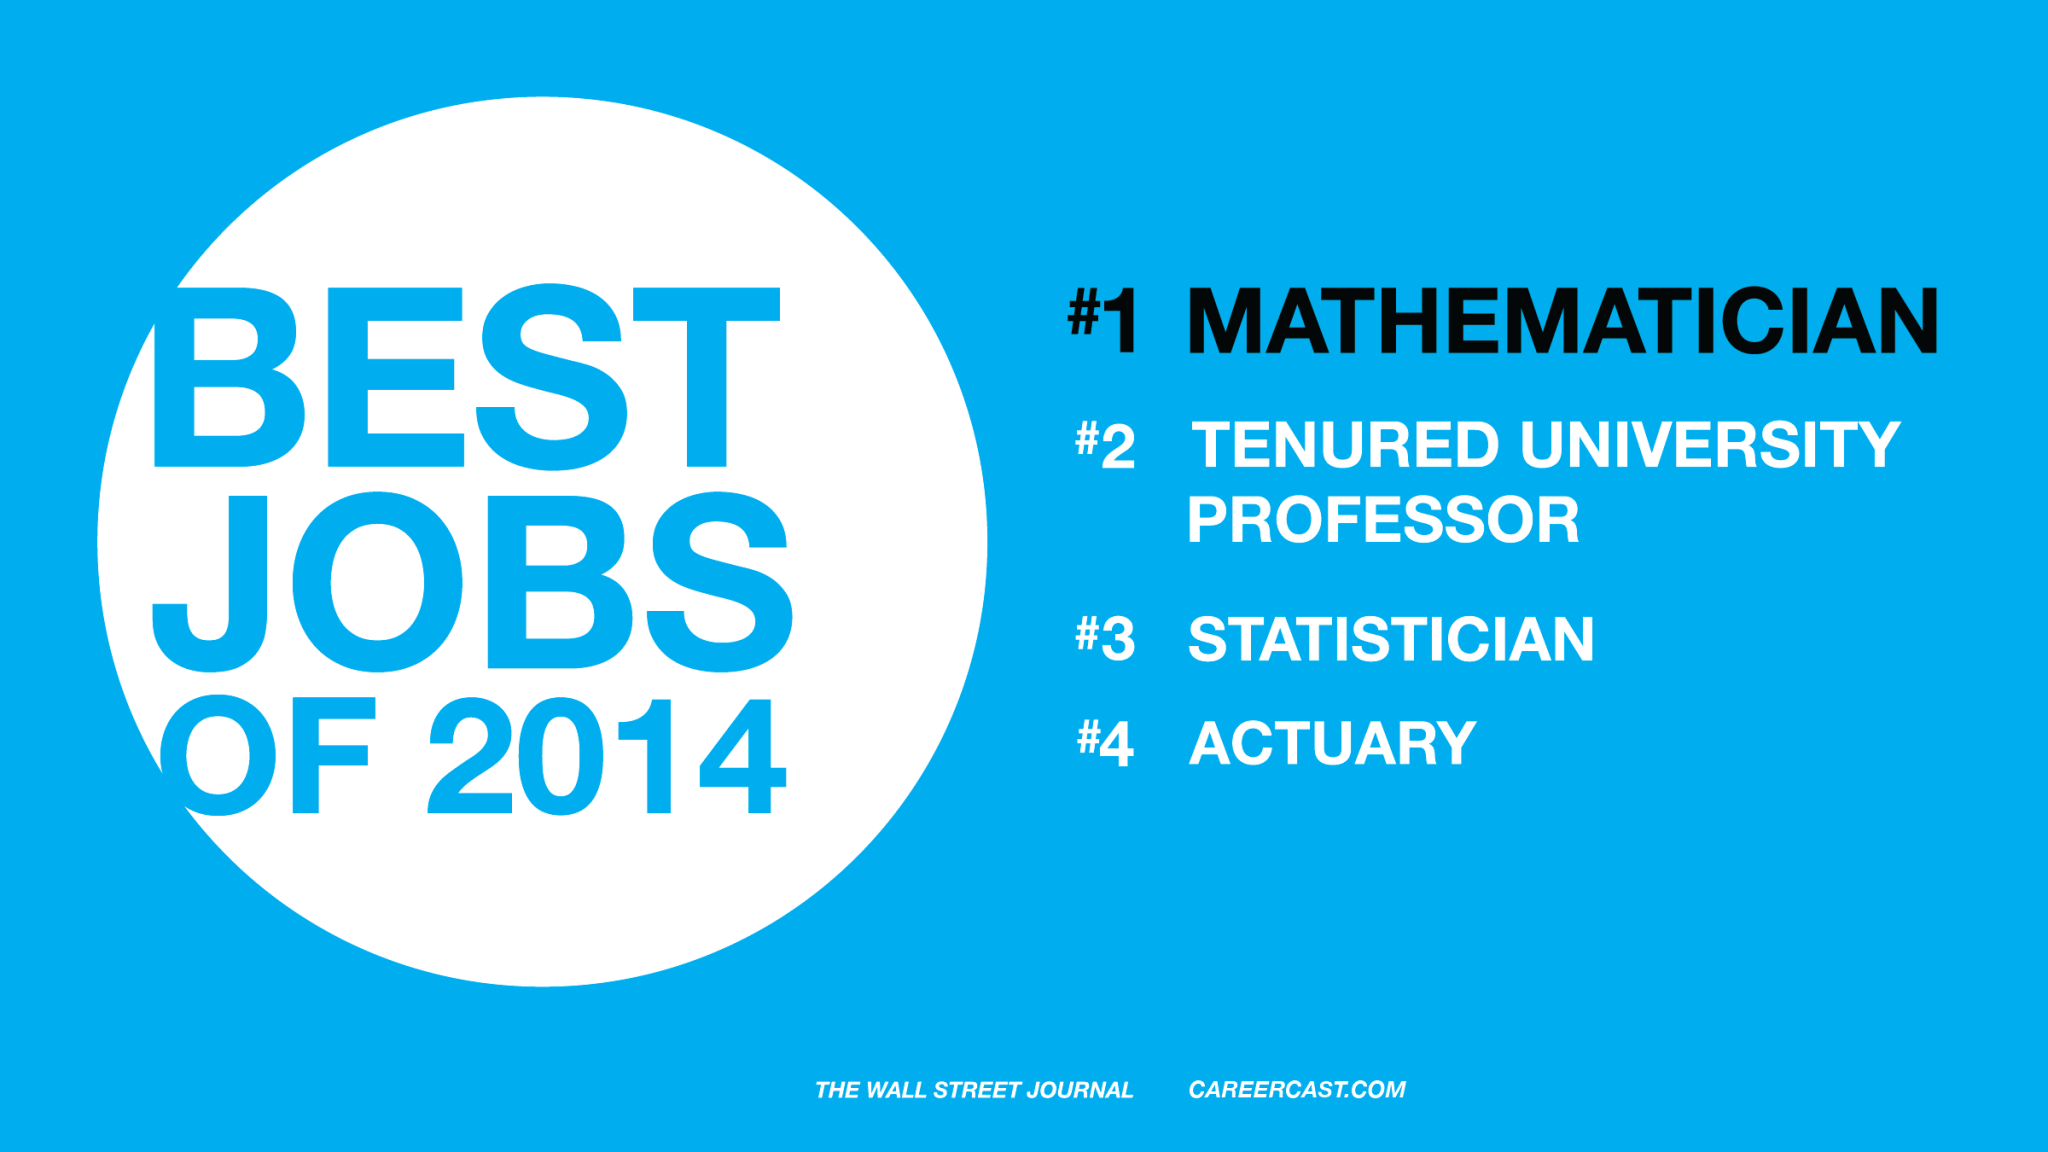 Best Job of 2014: Mathematician